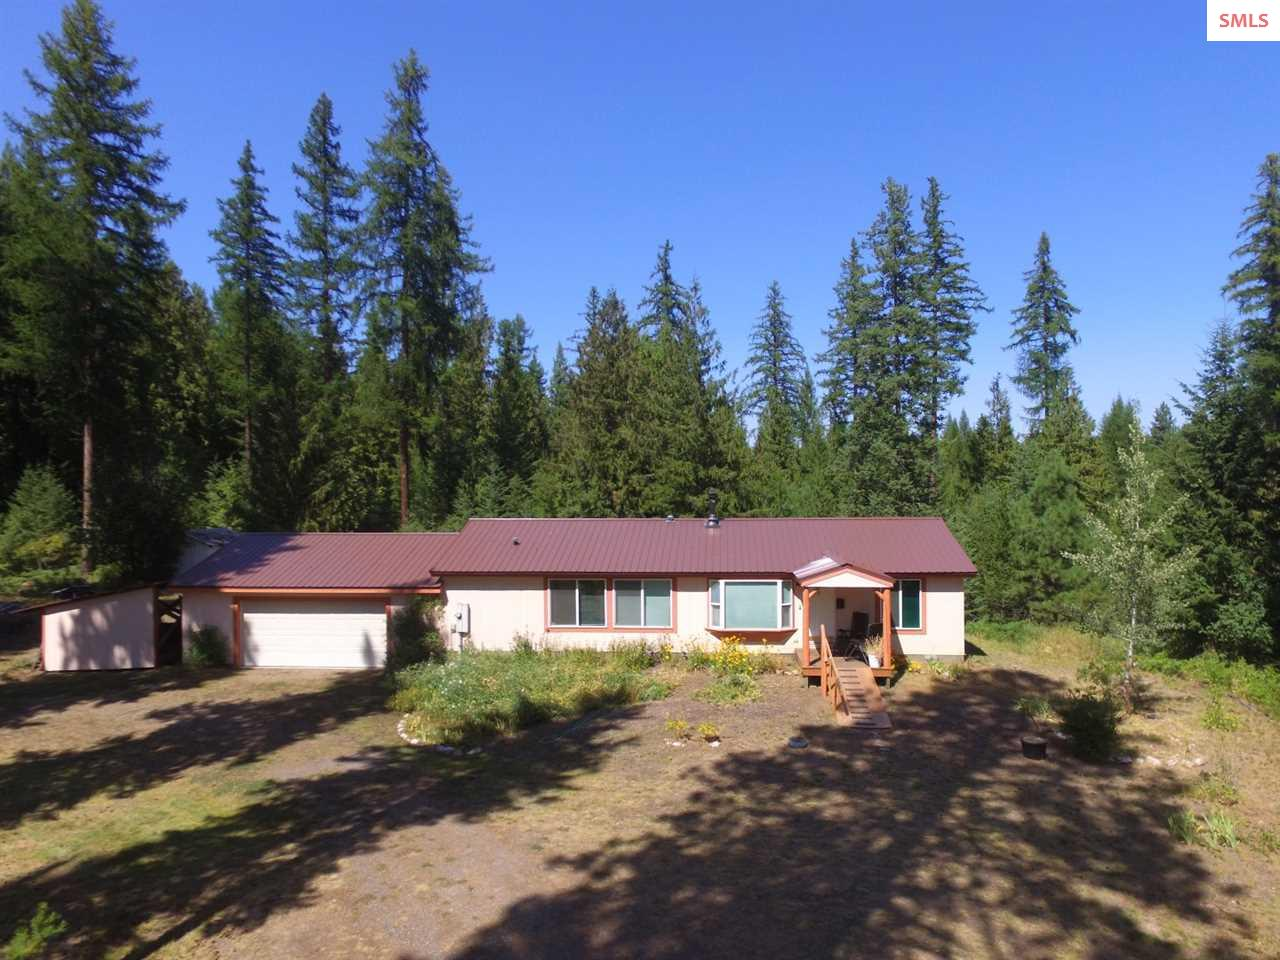 Bonners Ferry Idaho Real Estate Listings, Homes for Sale